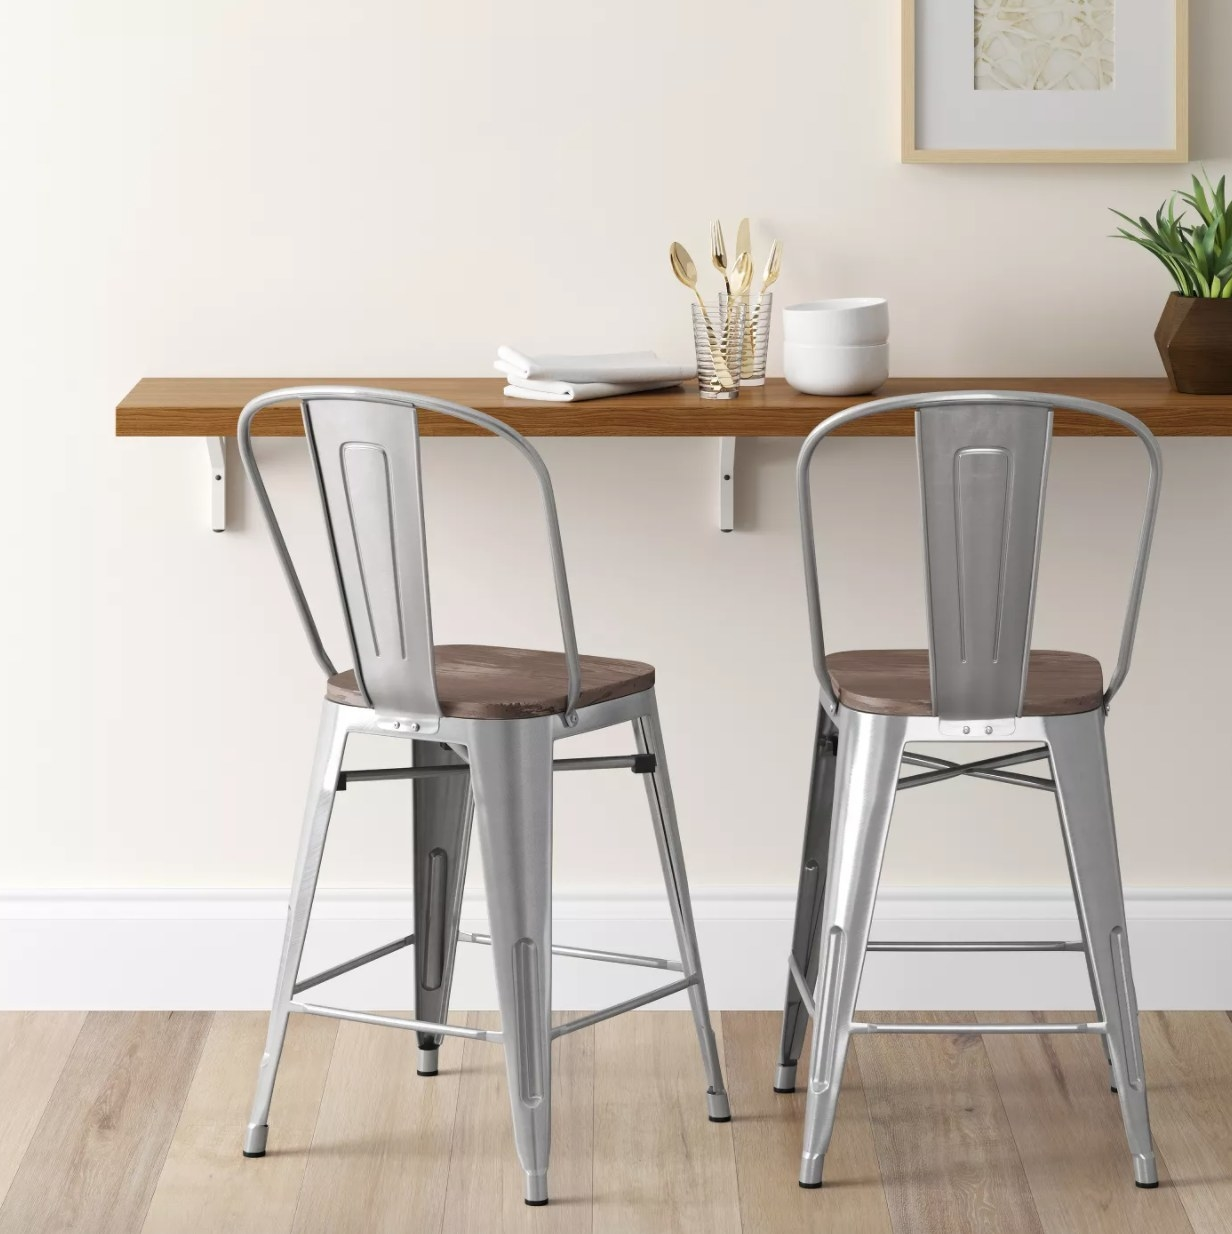 Metal barstools with wooden seats and metal backrests